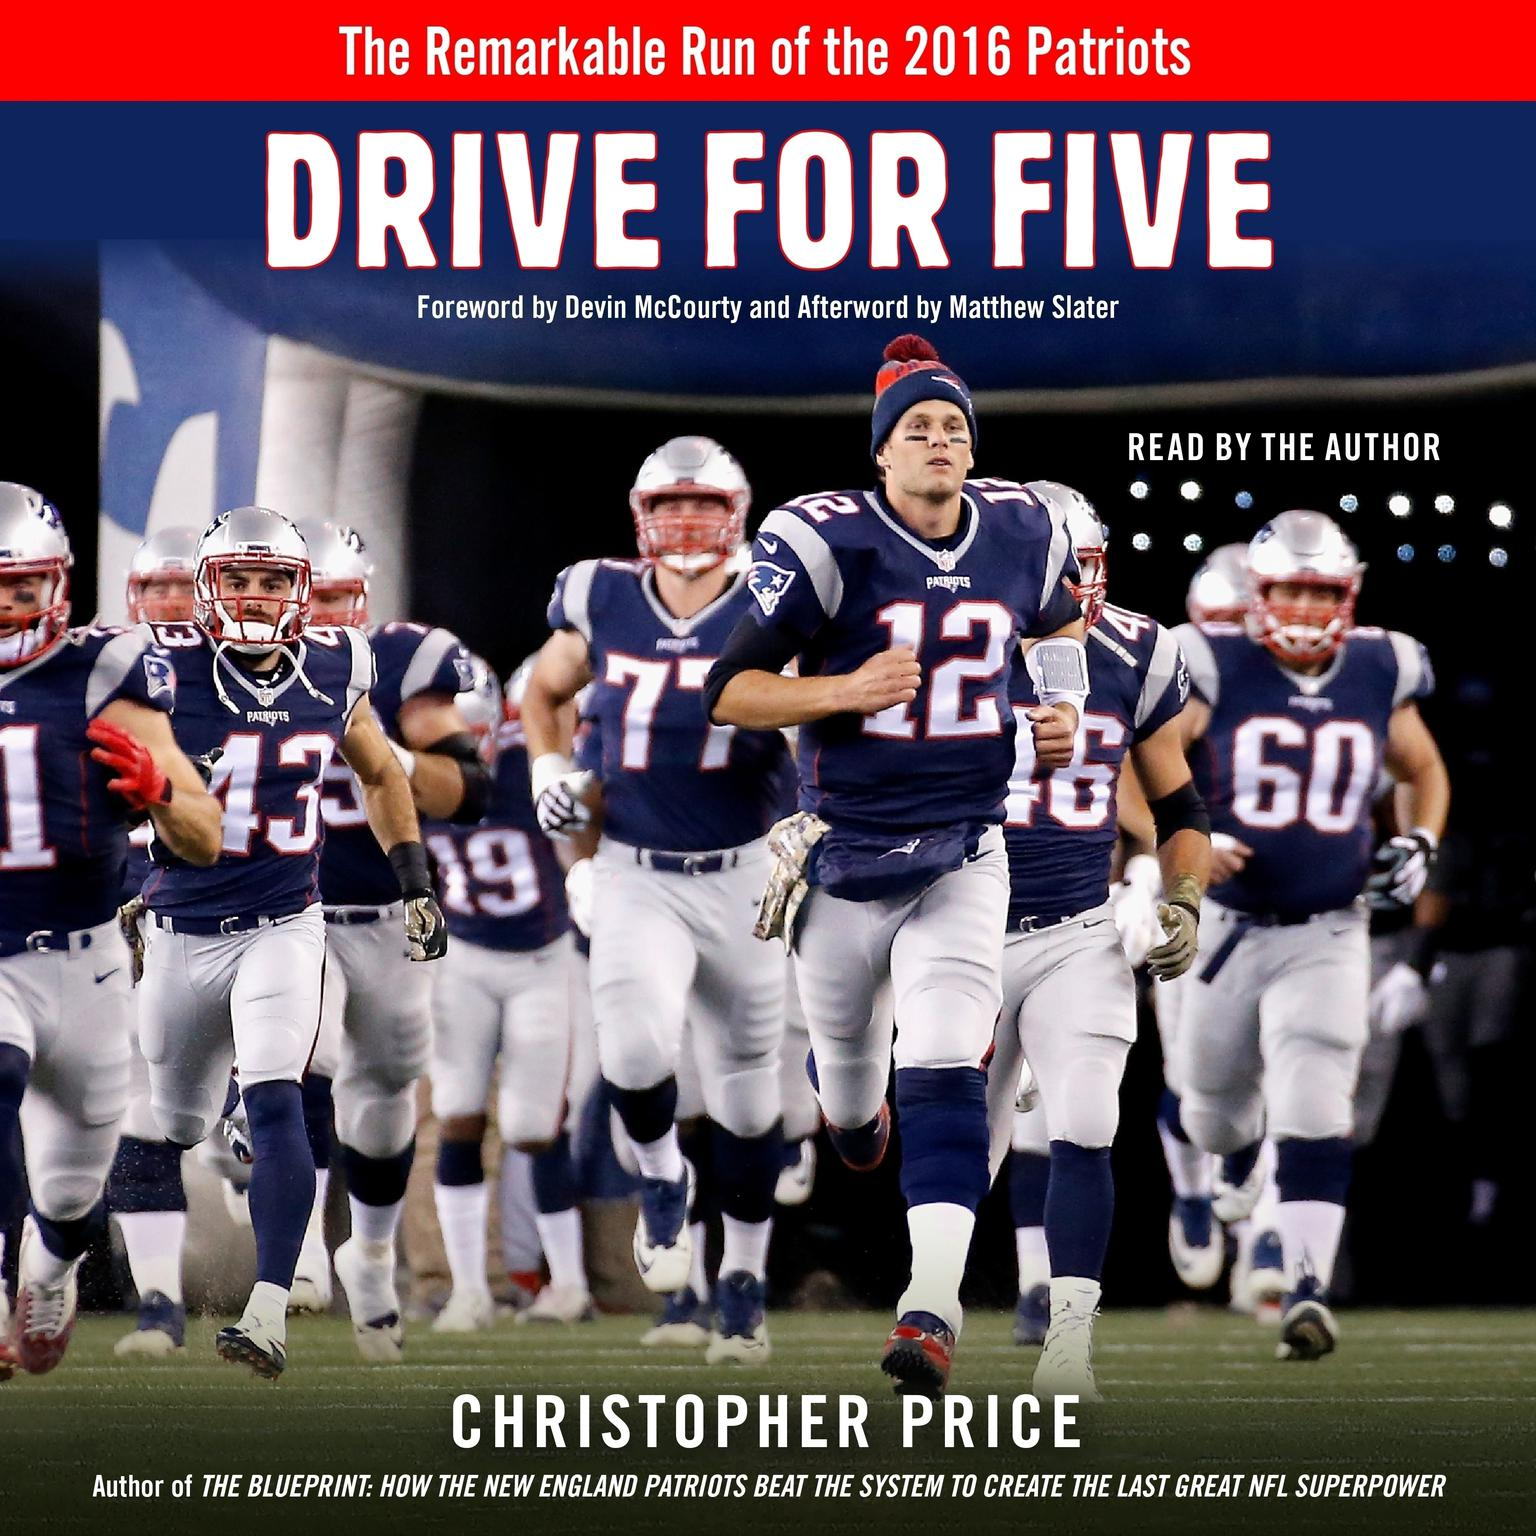 Drive for Five: The Remarkable Run of the 2016 Patriots Audiobook, by Christopher Price